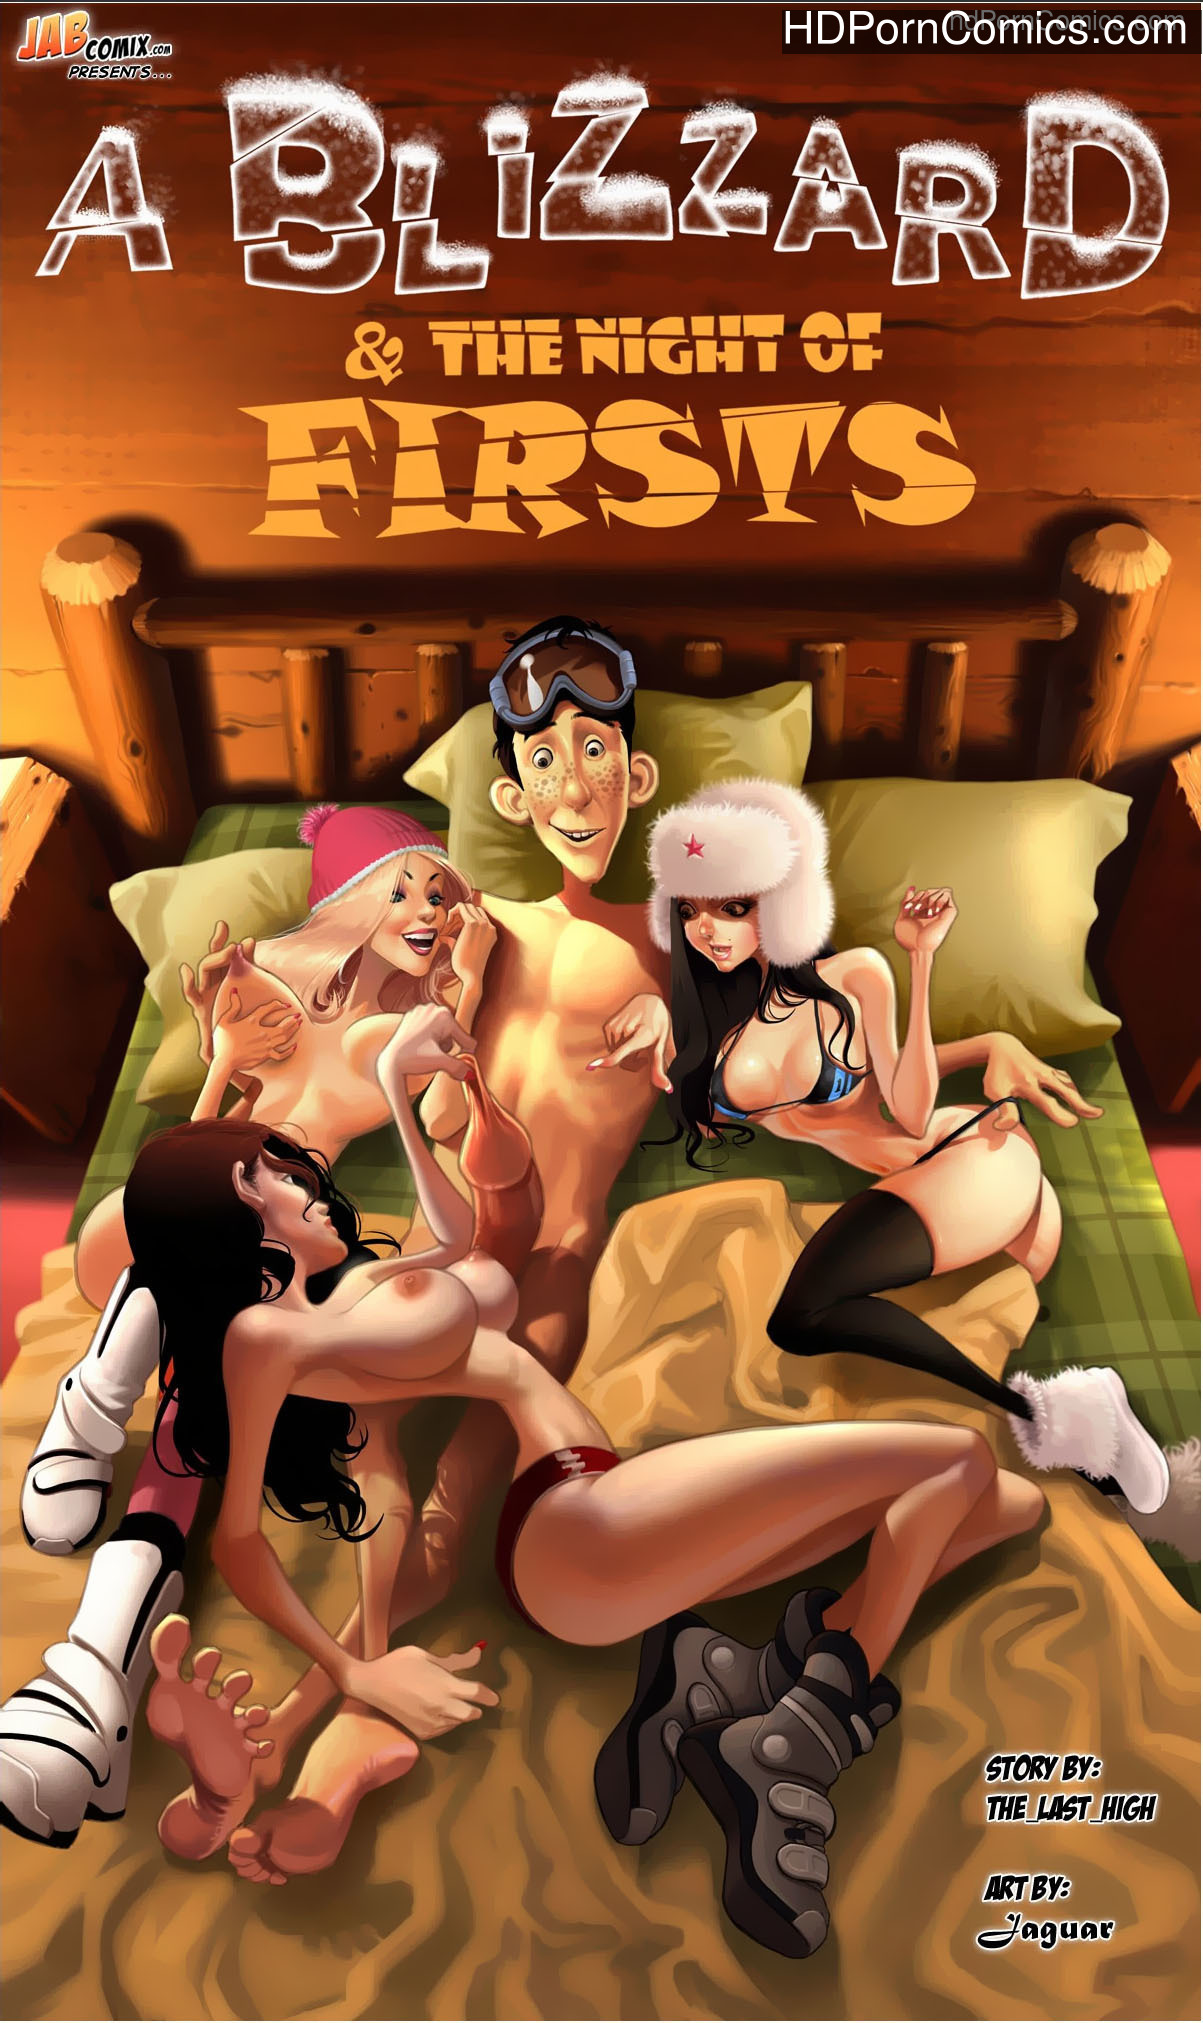 A Blizzard & Night of Firsts1 free sex comic